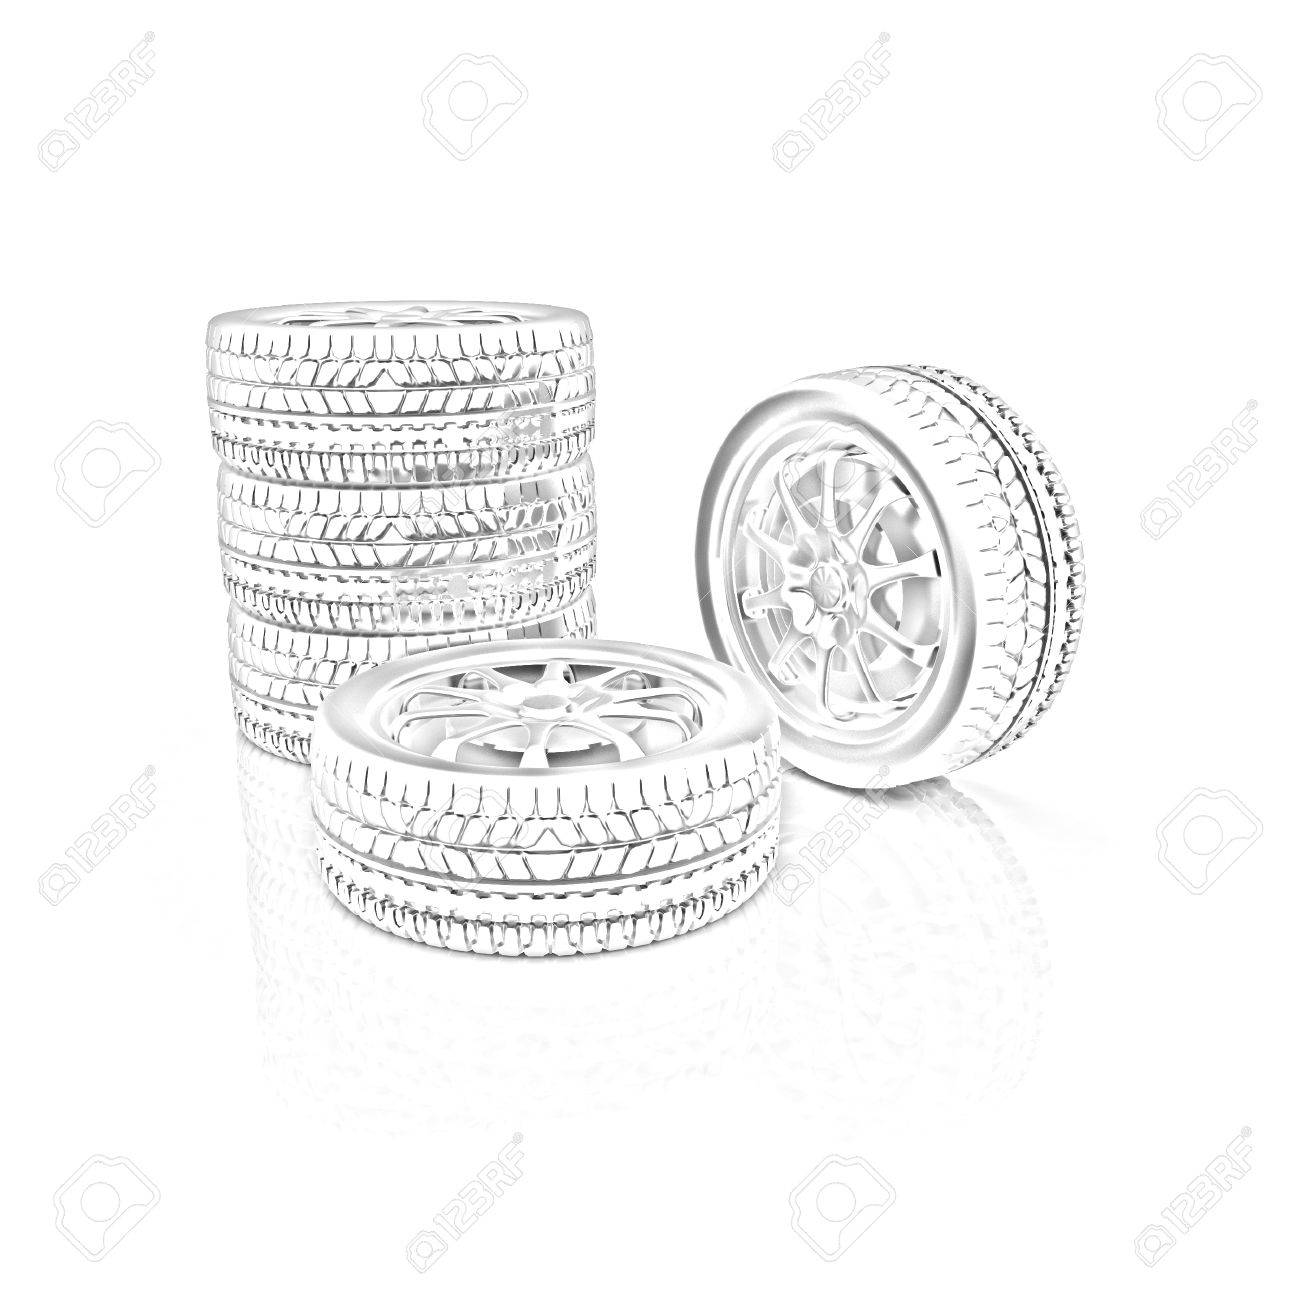 Car Wheels Icon On White Background Pencil Drawing Stock Photo Picture And Royalty Free Image Image 32047463